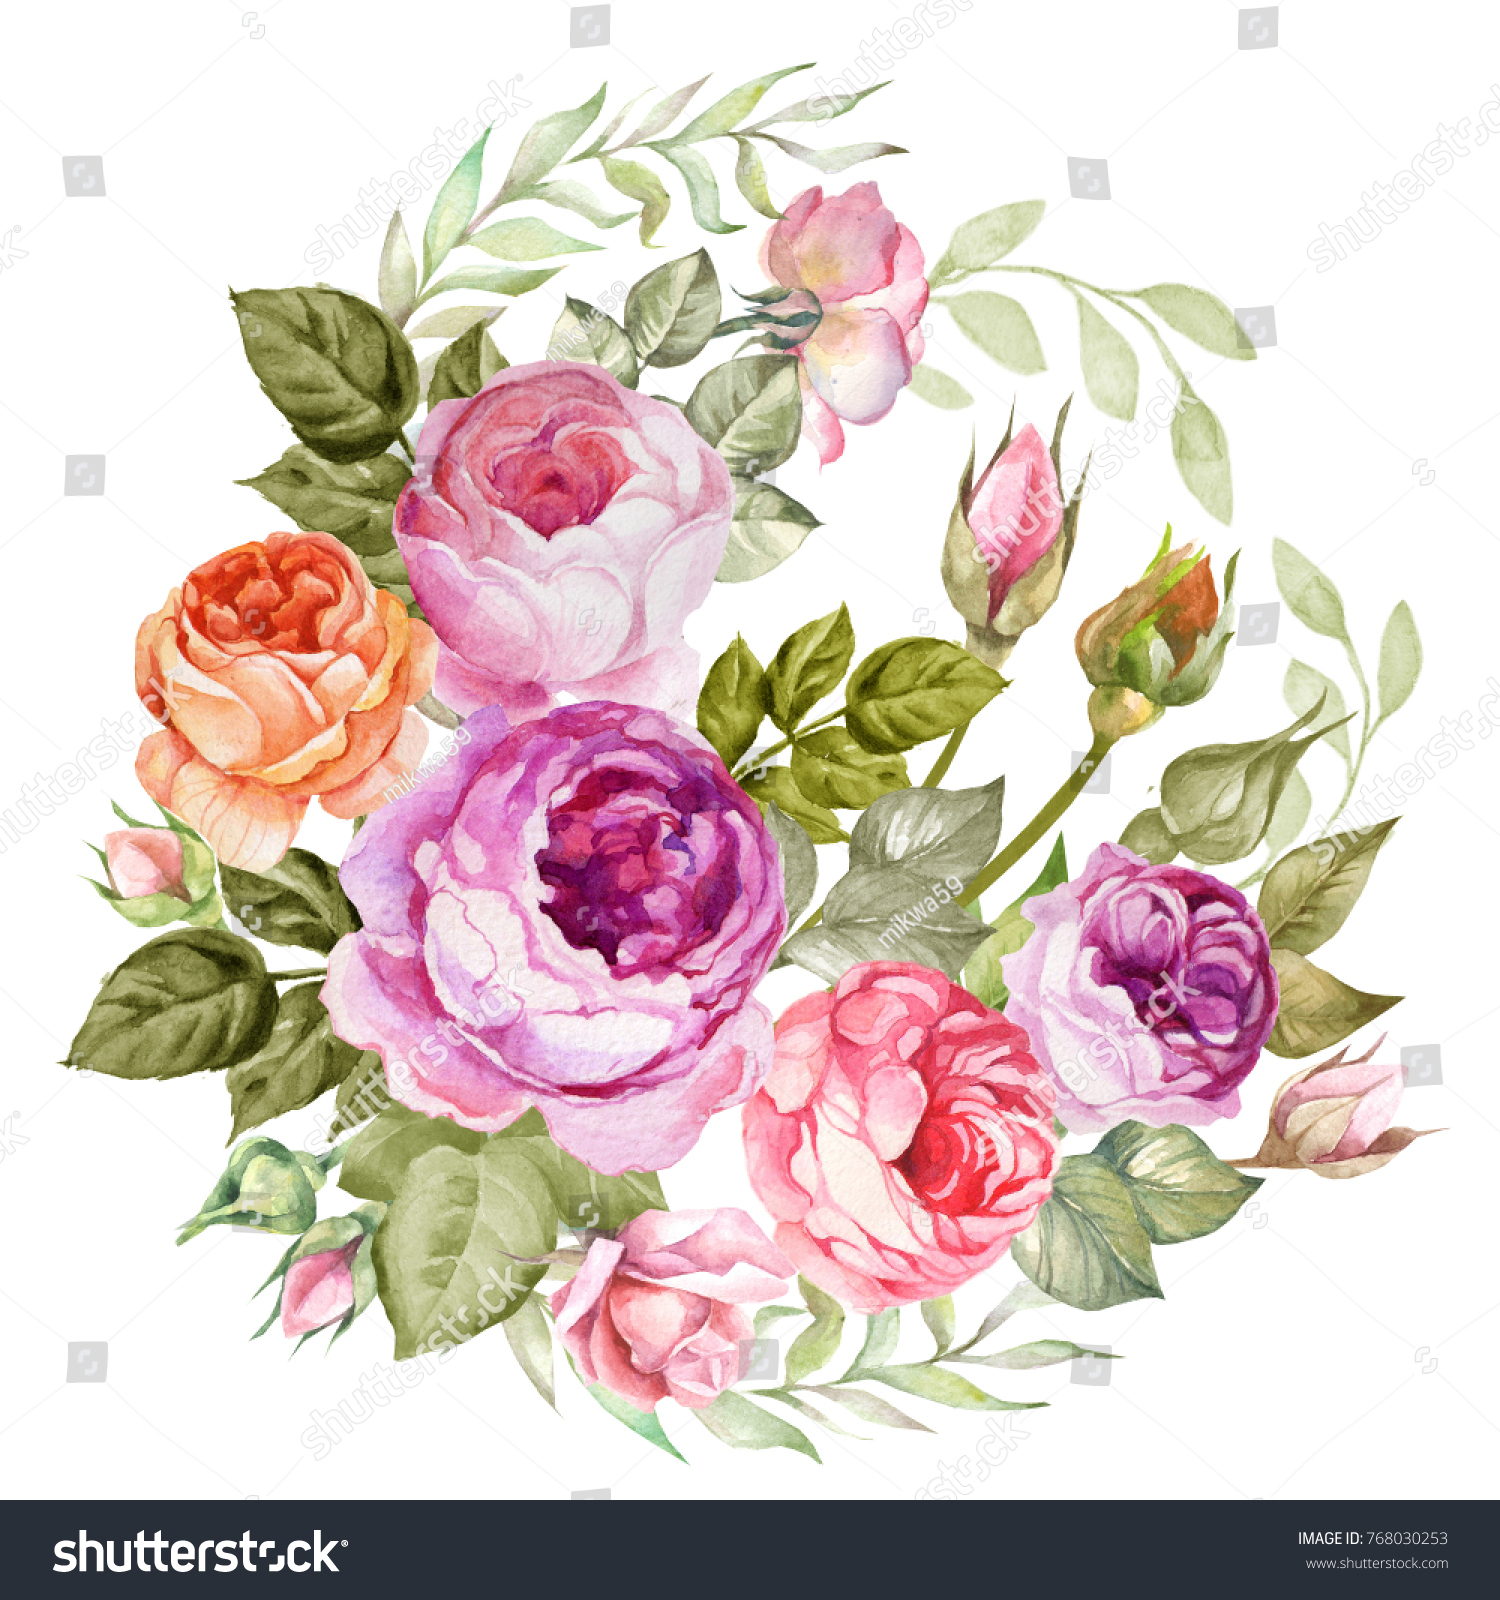 Vintage flowers bouquet watercolor roses stock illustration vintage flowers bouquet of watercolor roses izmirmasajfo